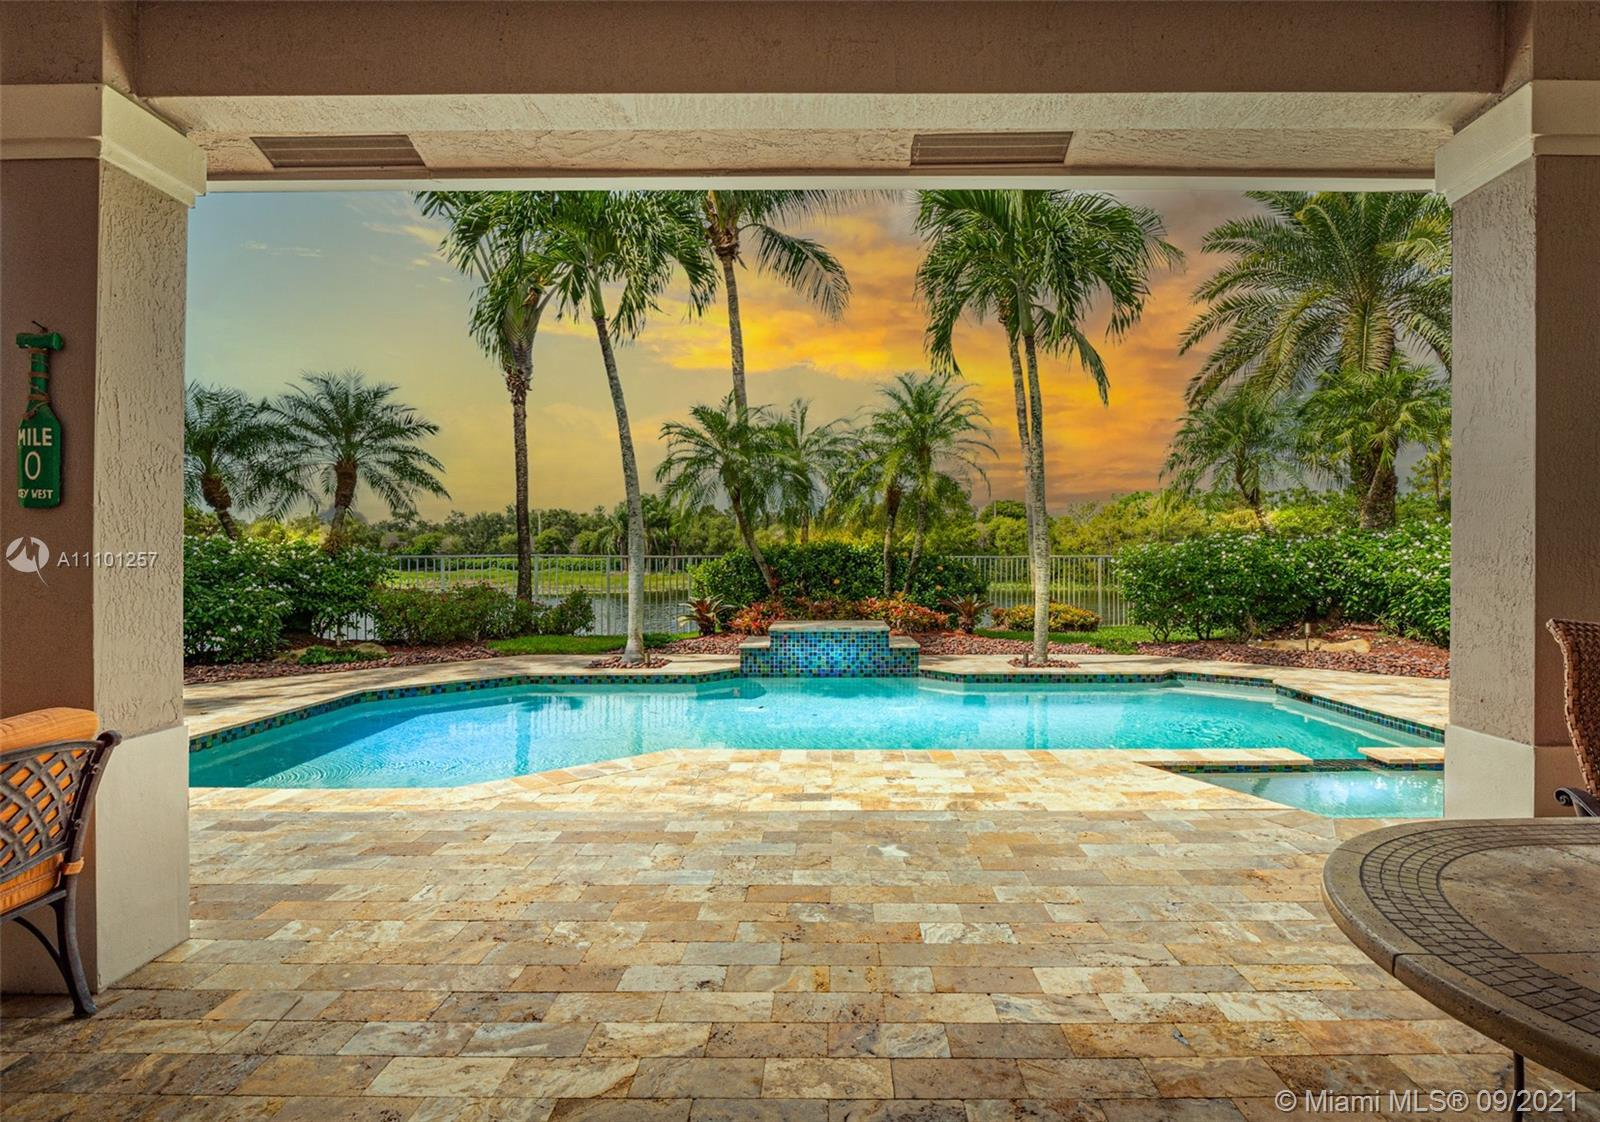 Stunning 2-story lakefront home in the exclusive Weston Hills CC - Hunter's Pointe! Impeccably maint